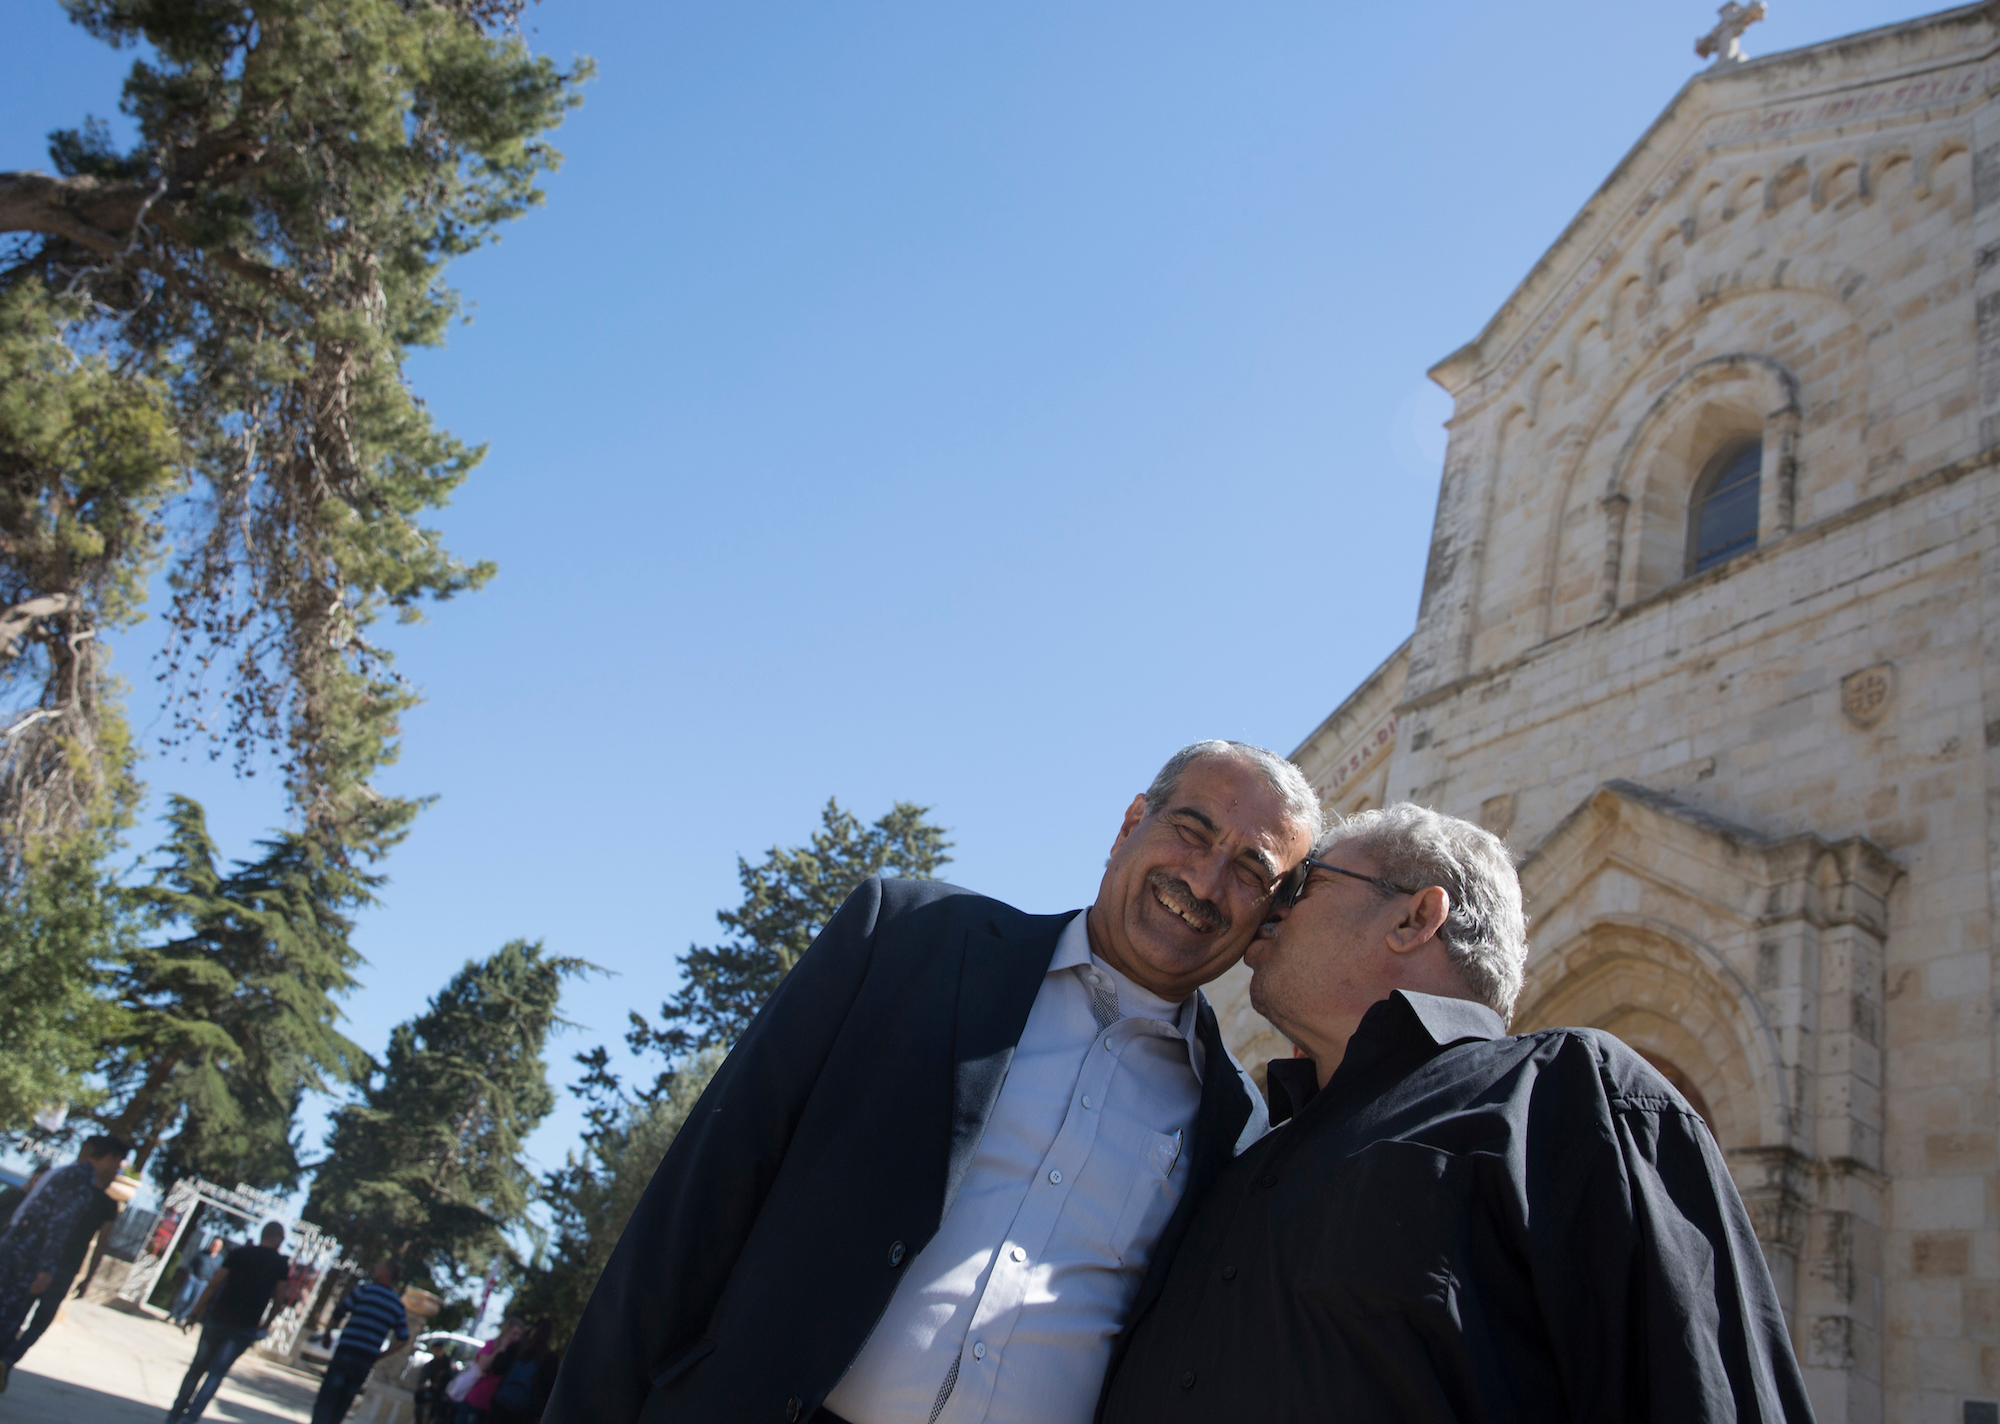 Anton Qulibyoba Yoakim, 63, (R) kisses his friend Baker Ma'Ali, 63, at the Franciscan Church of Emmaus in the West Bank village of El Qubeibeh on Monday, April 17, 2017. Anton recalled how they both breastfed from each other's mother when they were babies. (Photo by Heidi Levine/GroundTruth)